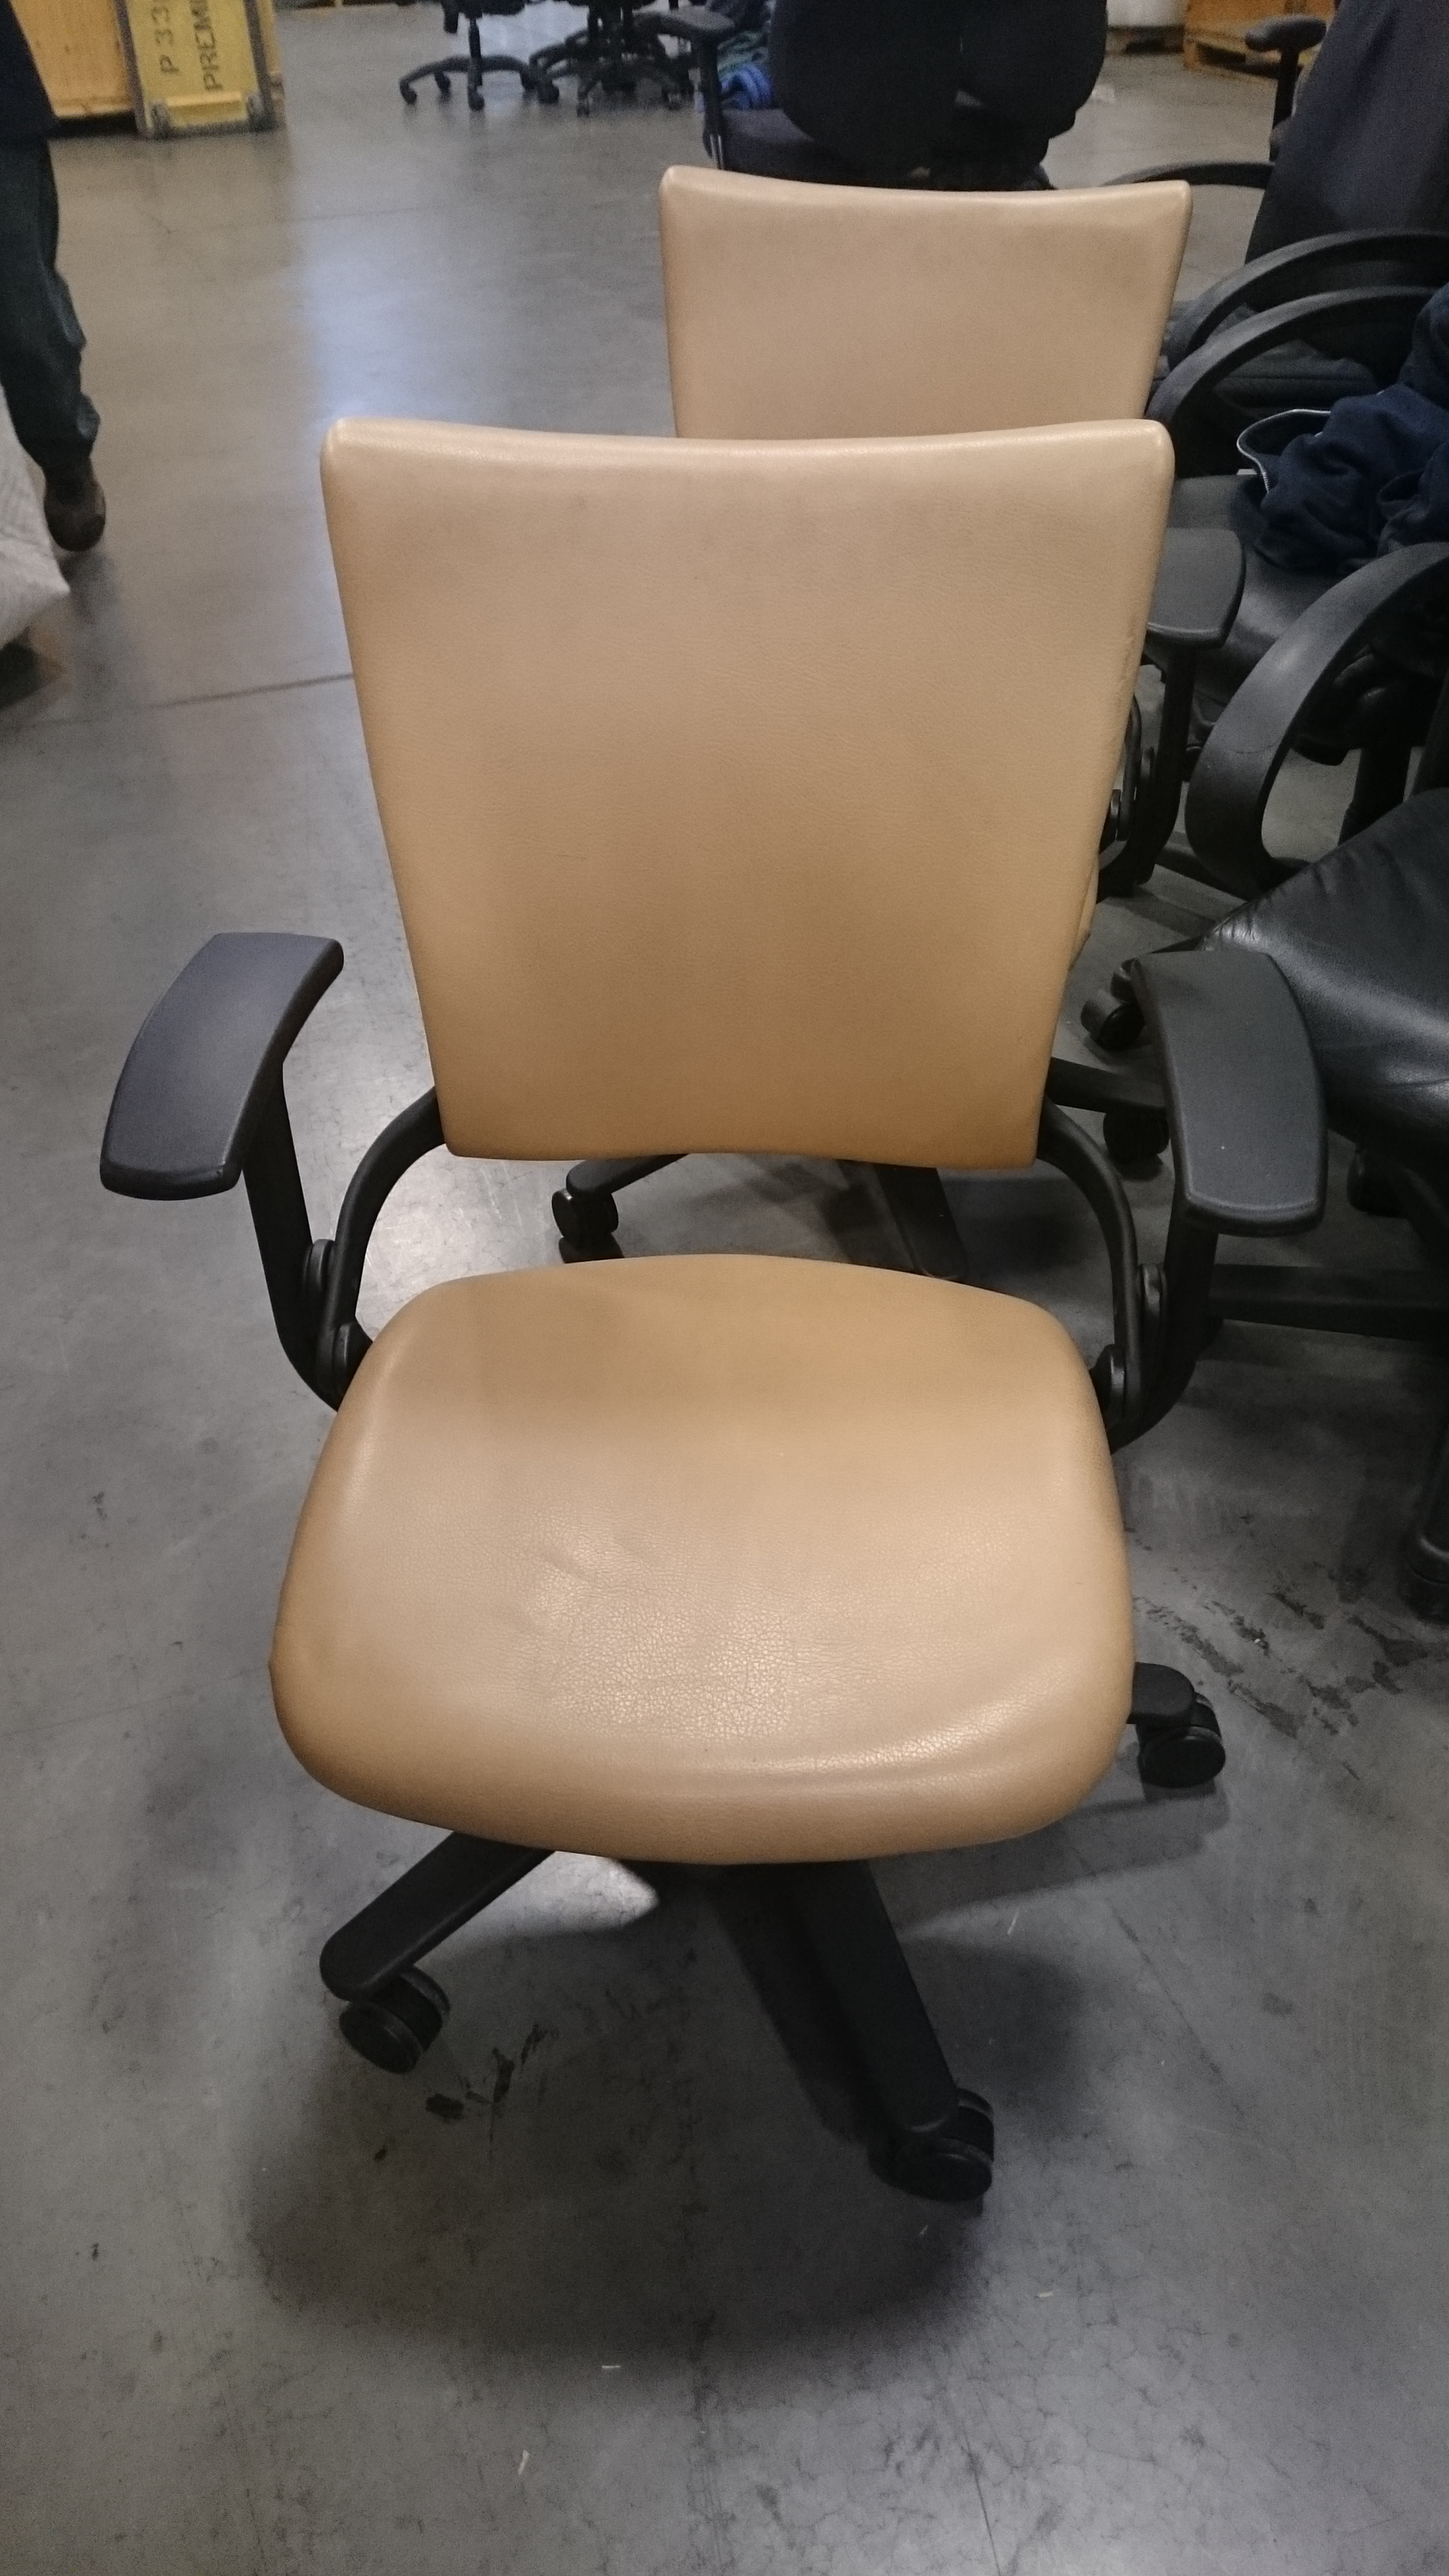 Allsteel Sum Leather Premiere Used Office Furniture